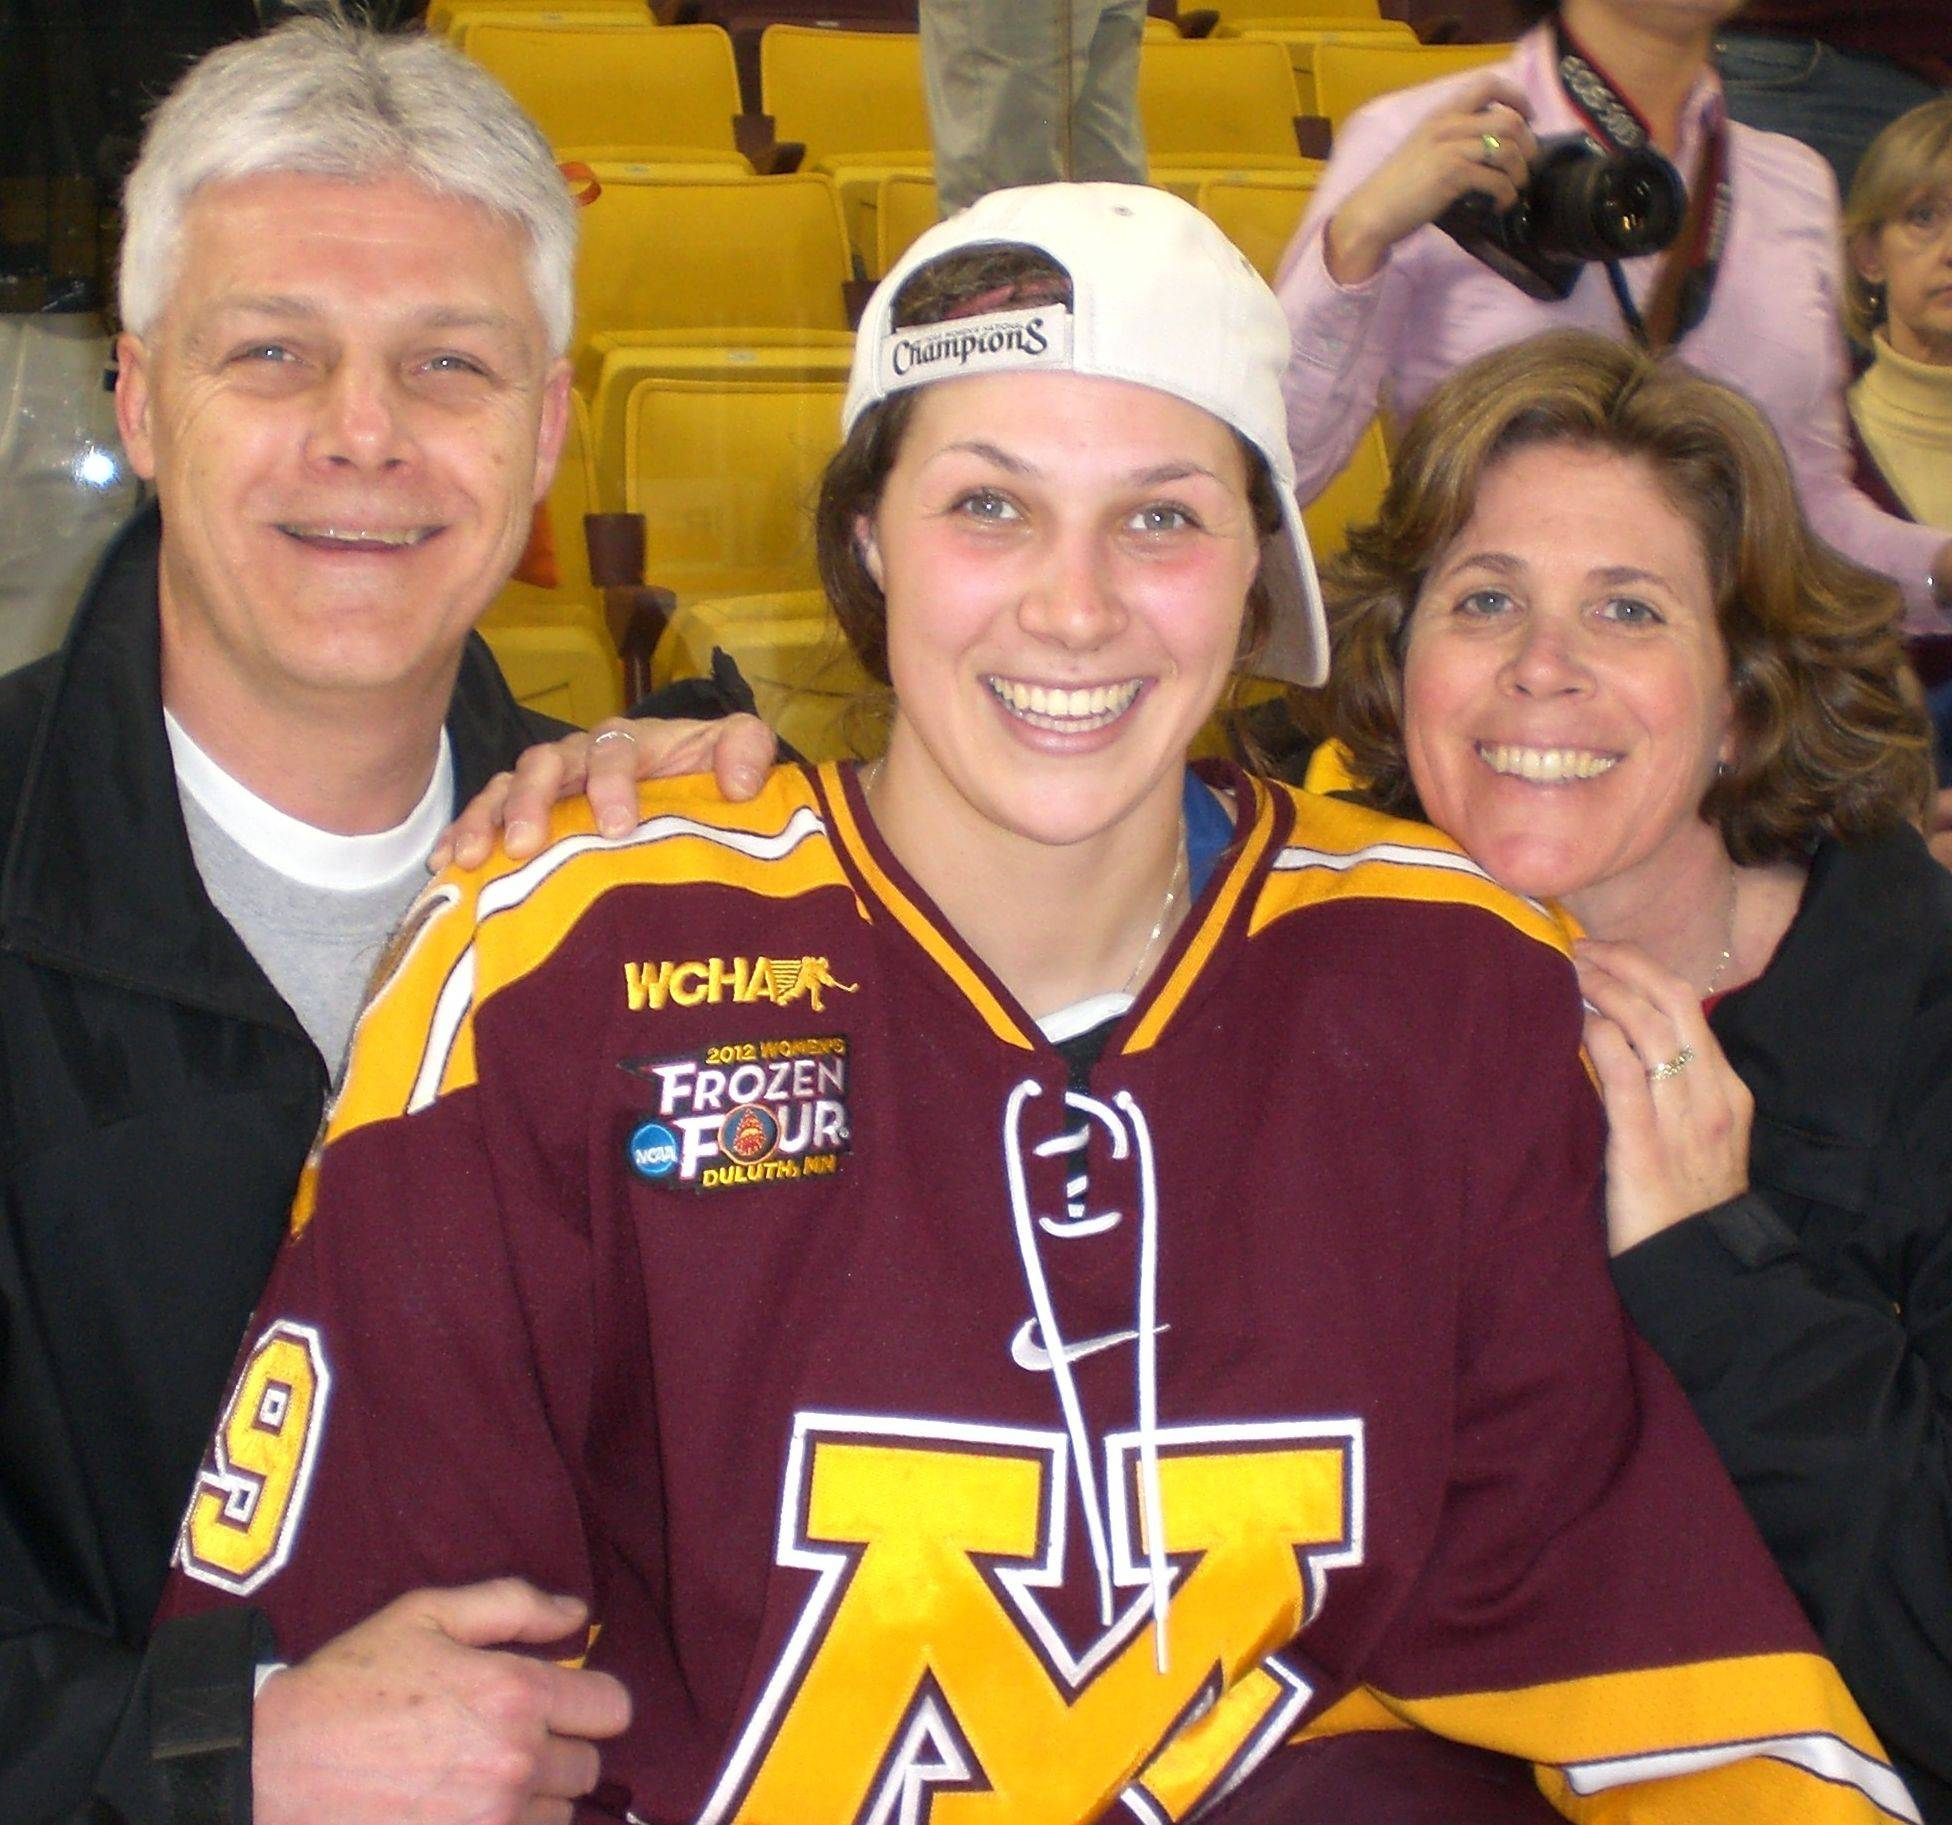 Megan Bozek was a co-captain on the undefeated University of Minnesota women's hockey team that won the 2012 NCAA title. She posed with her parents, Tom and Patti, after the title game.